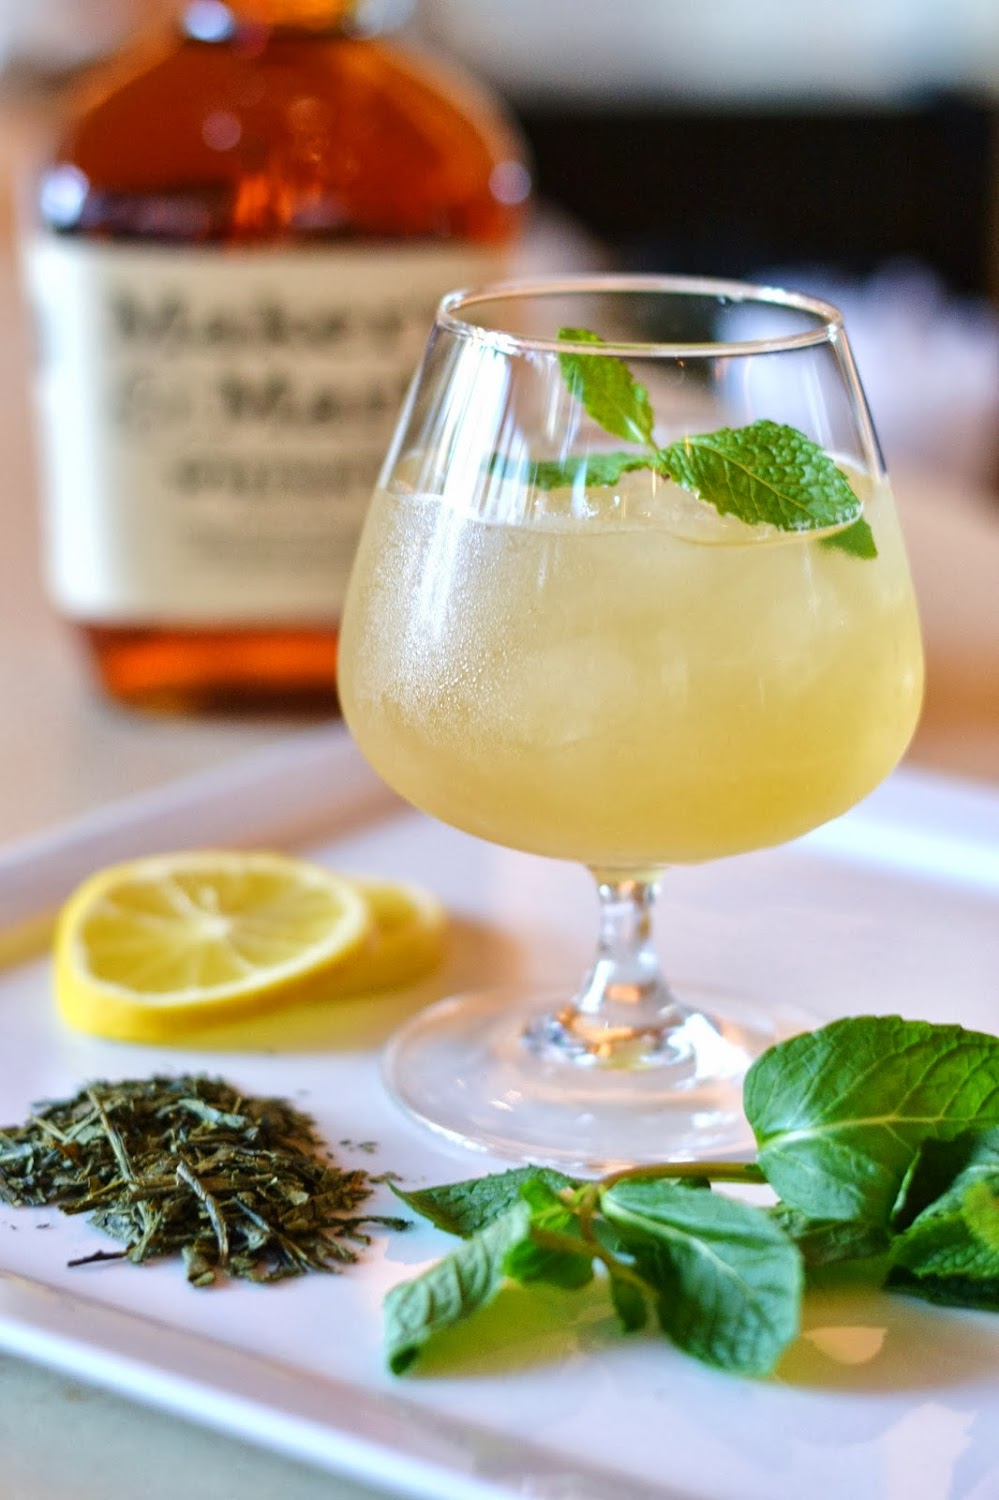 mardi gras bourbon green tea cocktail